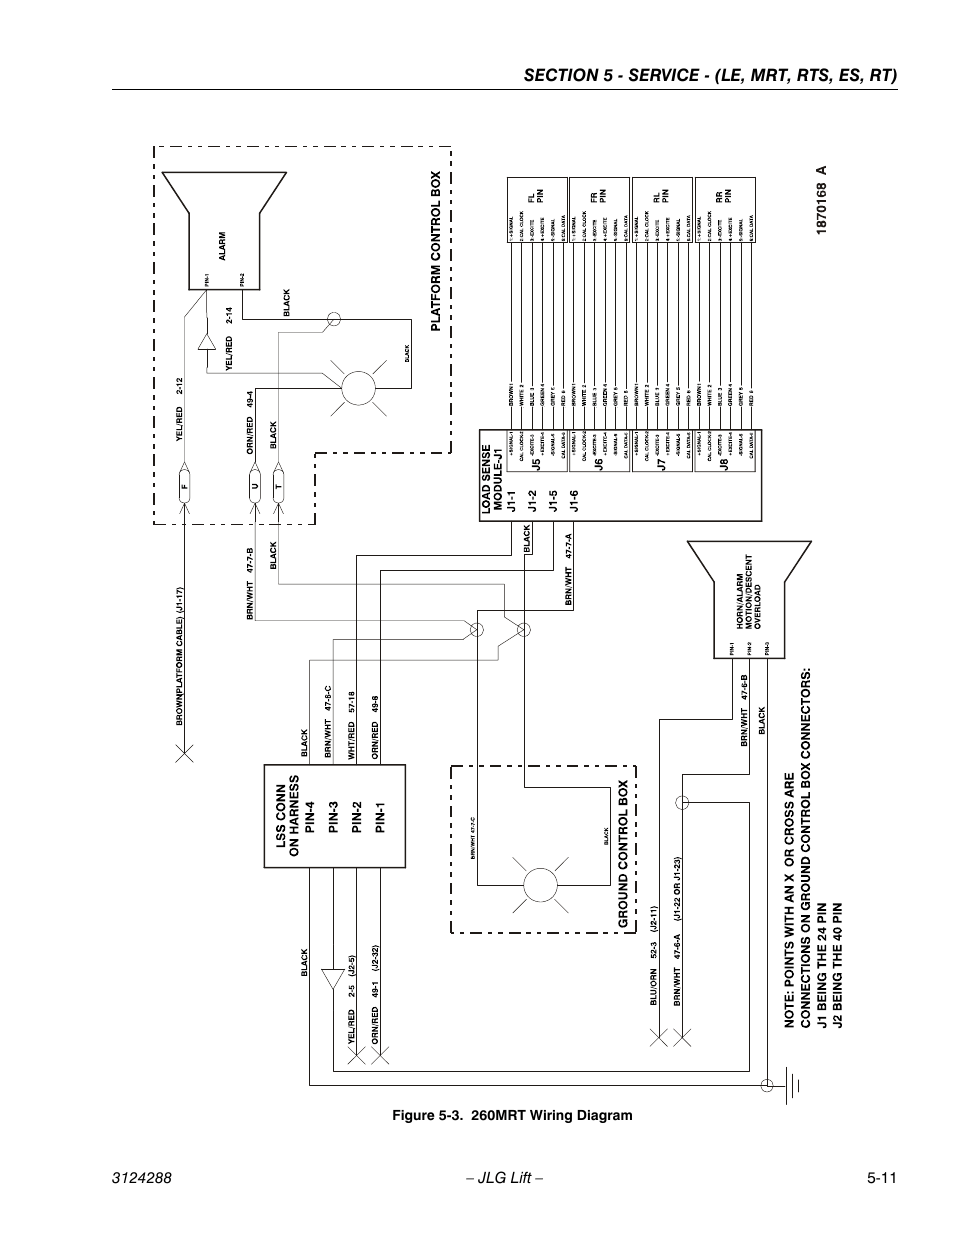 hight resolution of jlg wiring diagram wiring diagrams jlg scissor lift jlg 2630es wiring diagram